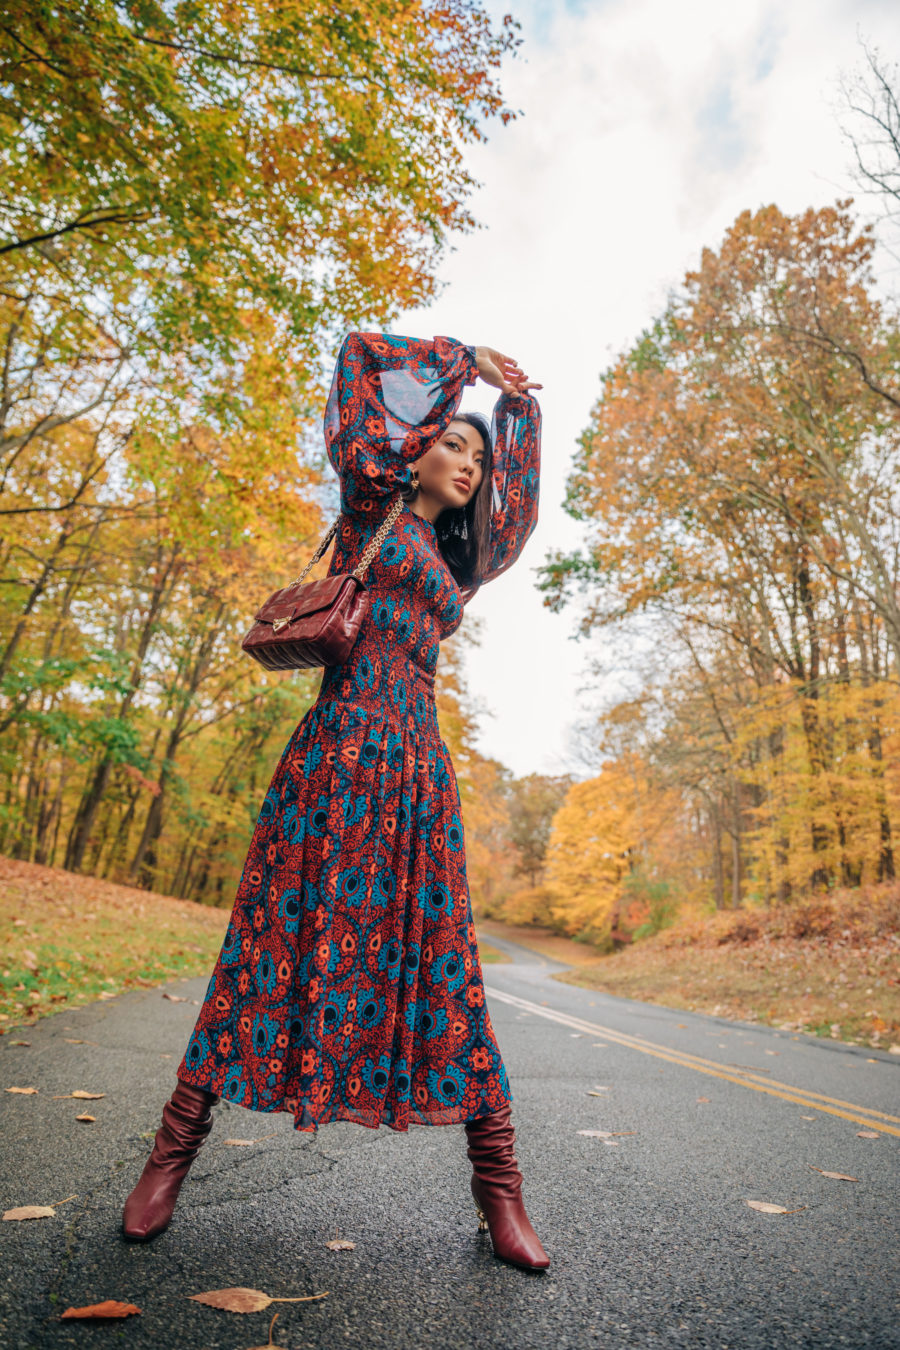 jessica wang wearing a floral dress and maroon boots for a valentine's day outfit // Jessica Wang - Notjessfashion.com